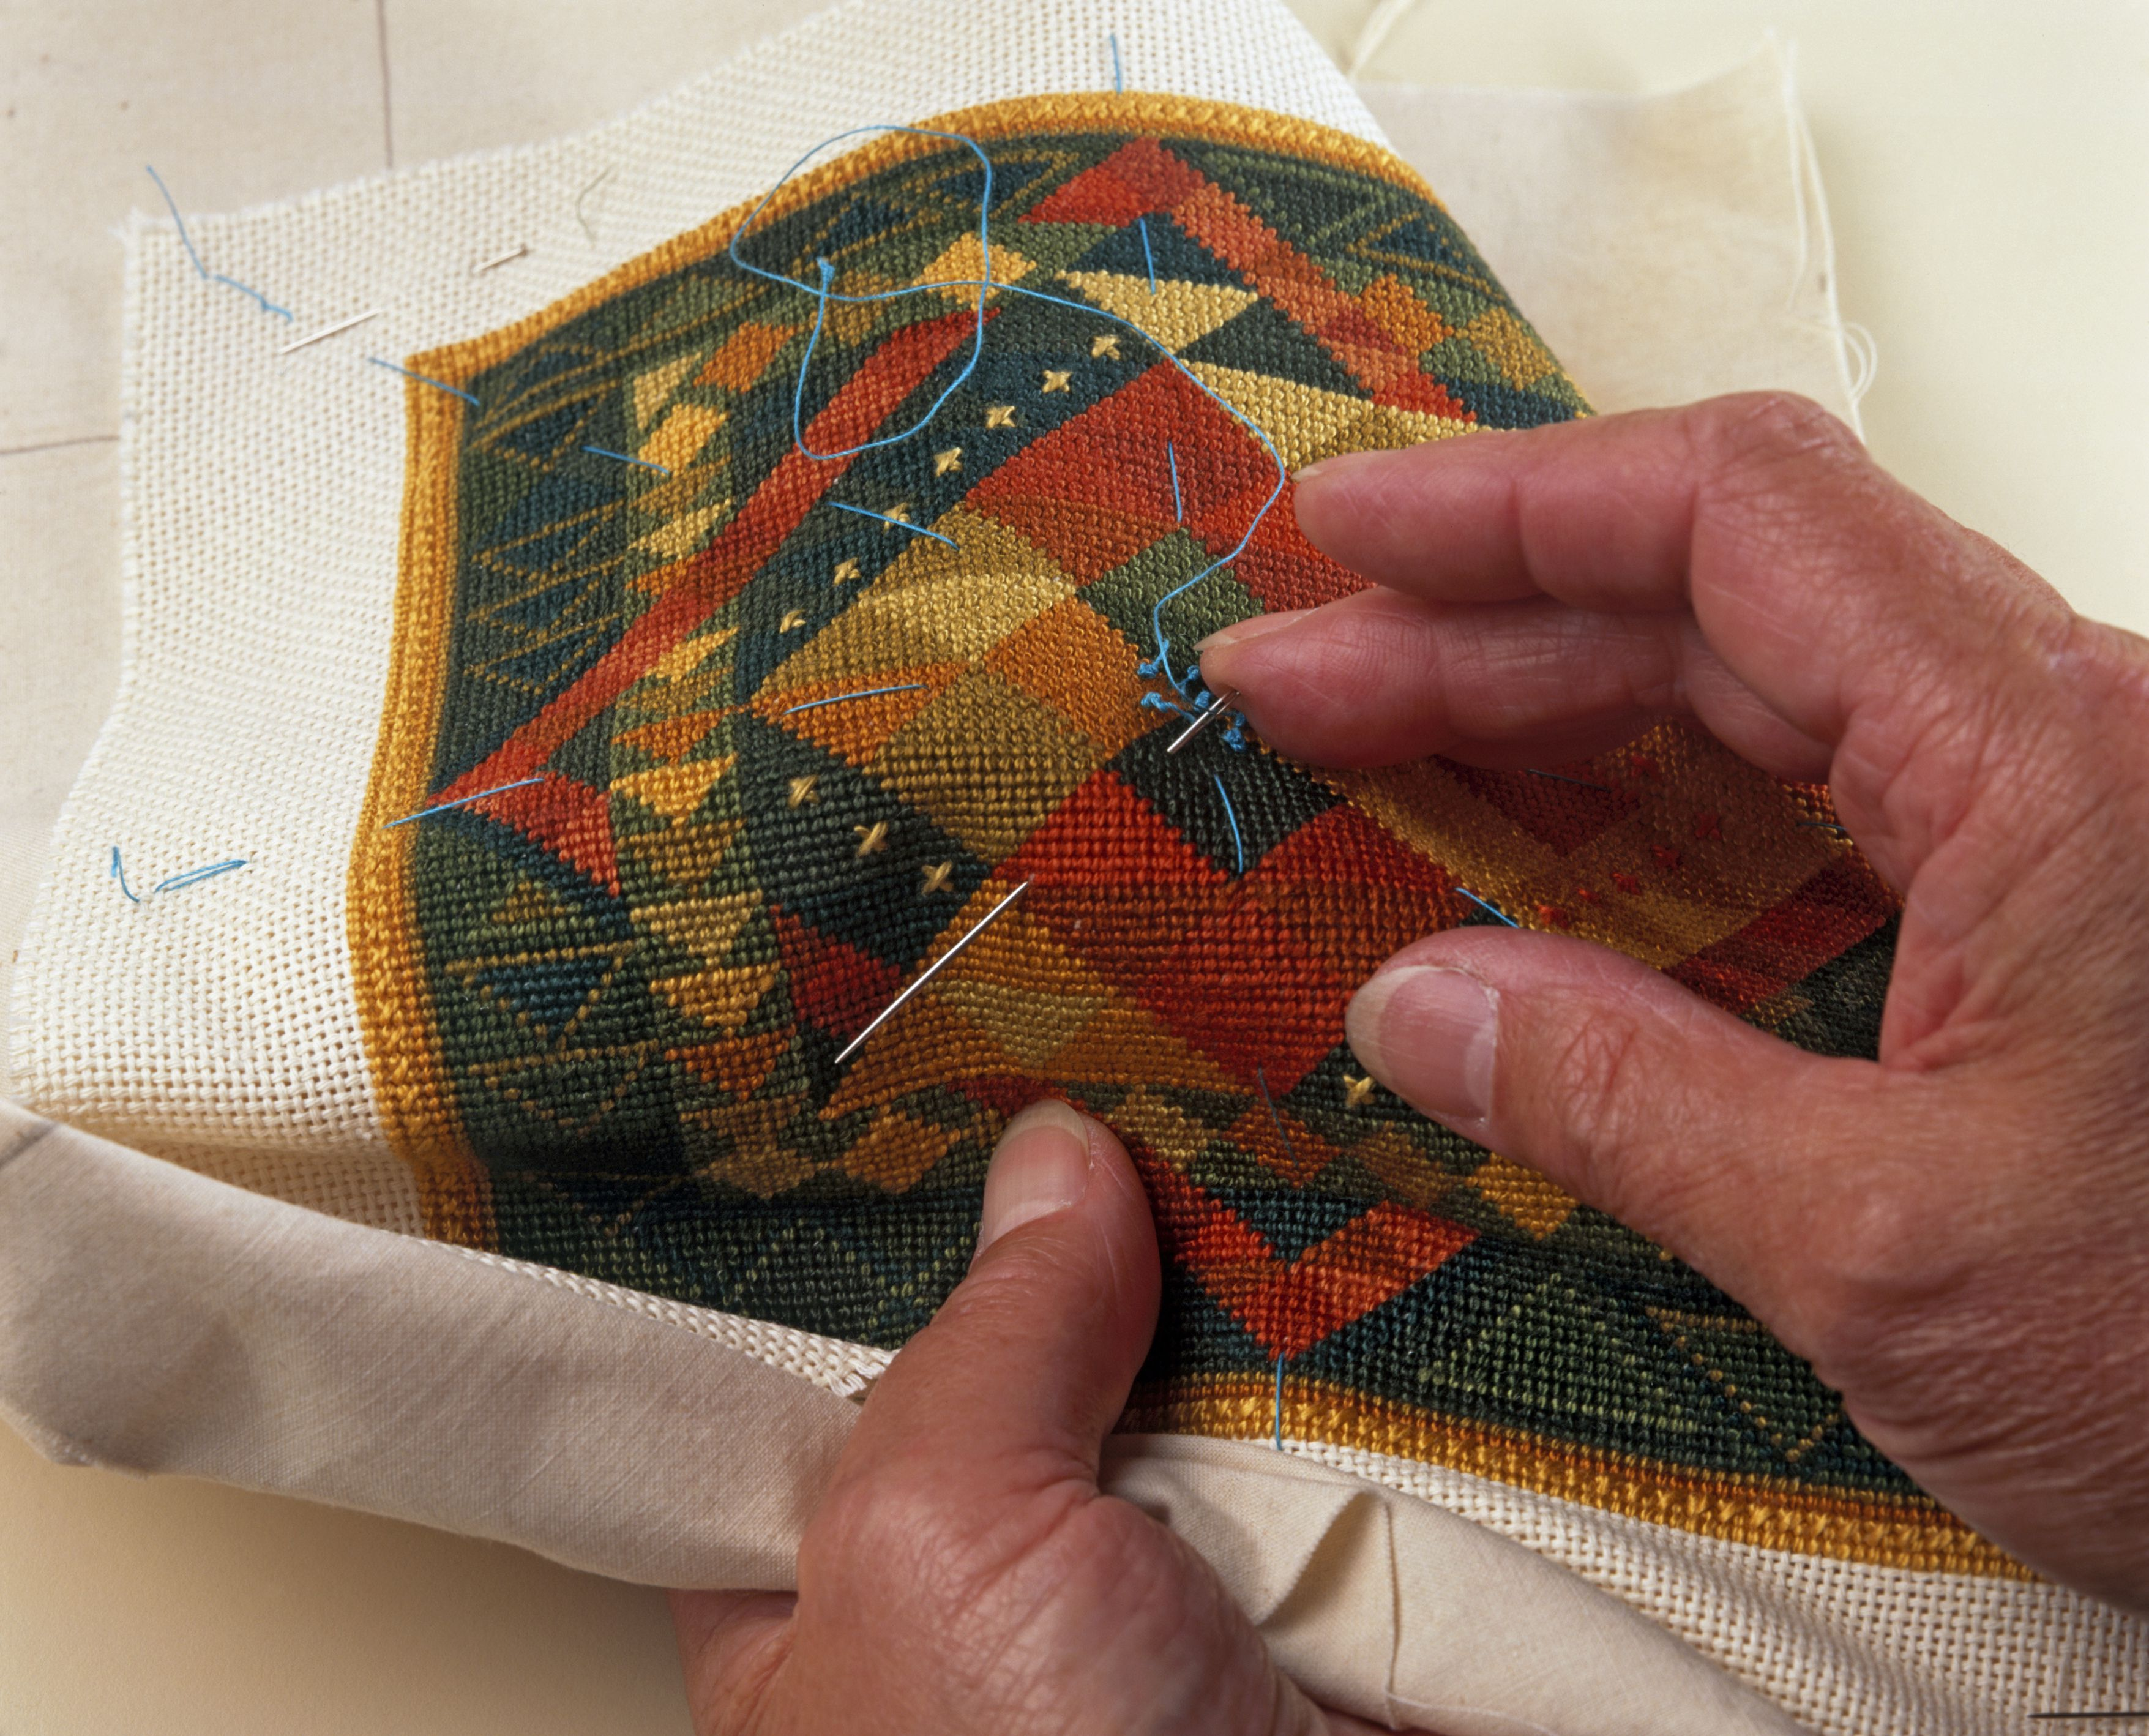 Basic Hand Sewing Stitches And Techniques